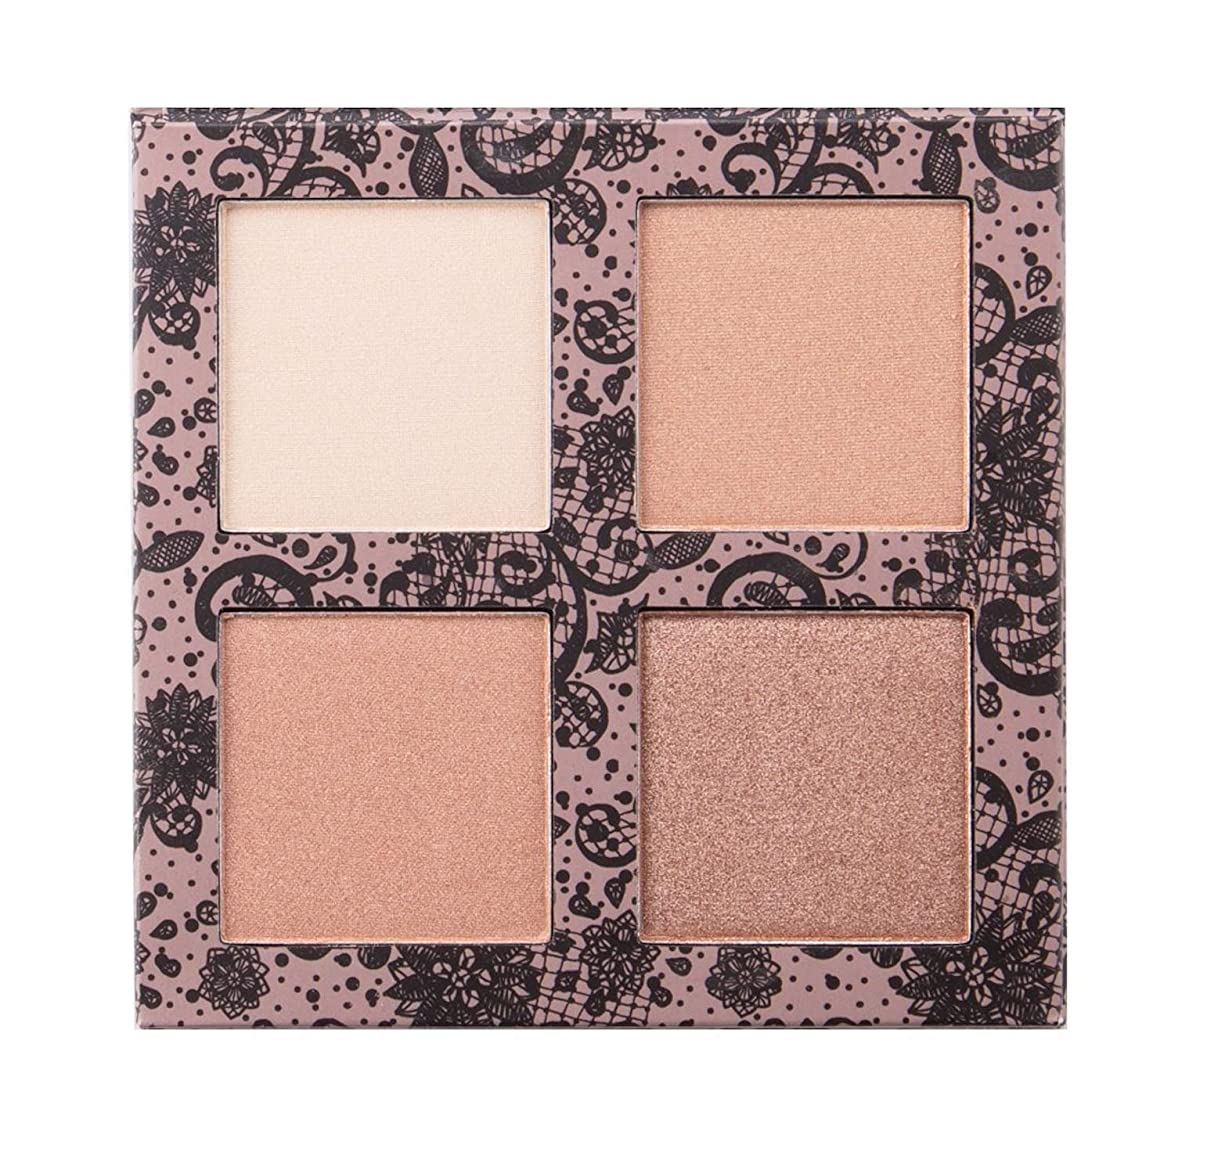 レールうなるアイザックBEAUTY CREATIONS Scandalous Glow Highlight Palette (並行輸入品)